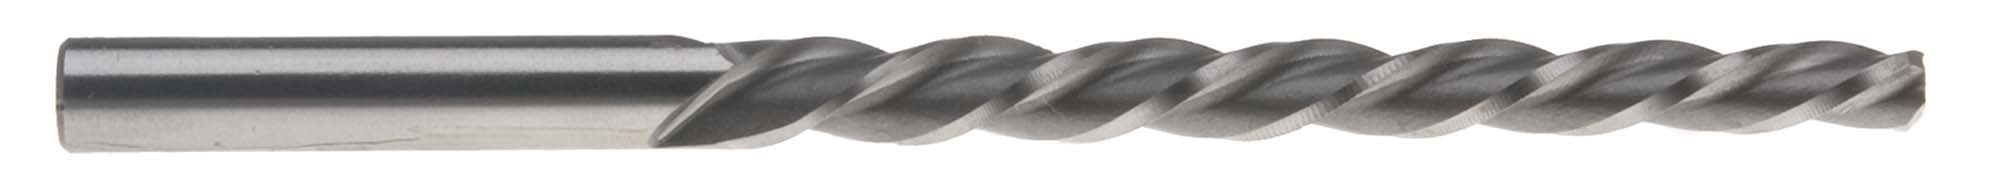 6 Helical Flute Taper Pin Reamer, High Speed Steel